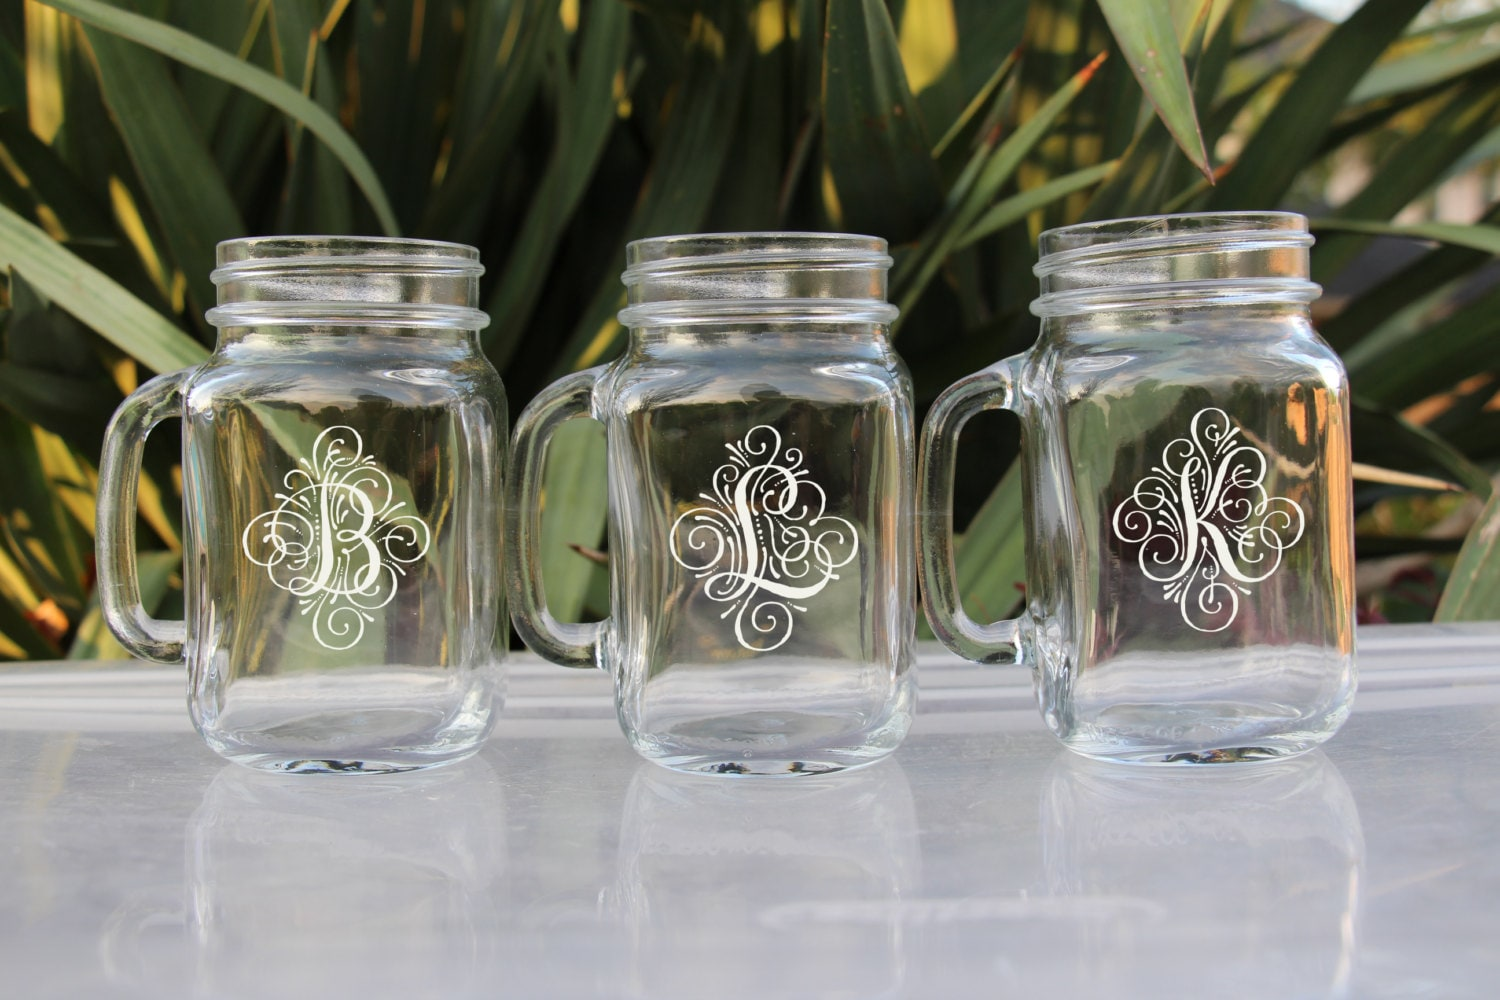 Personalized Beer Mugs Wedding Gift : Personalized Beer Mug Engraved Mason Jar Glasses with